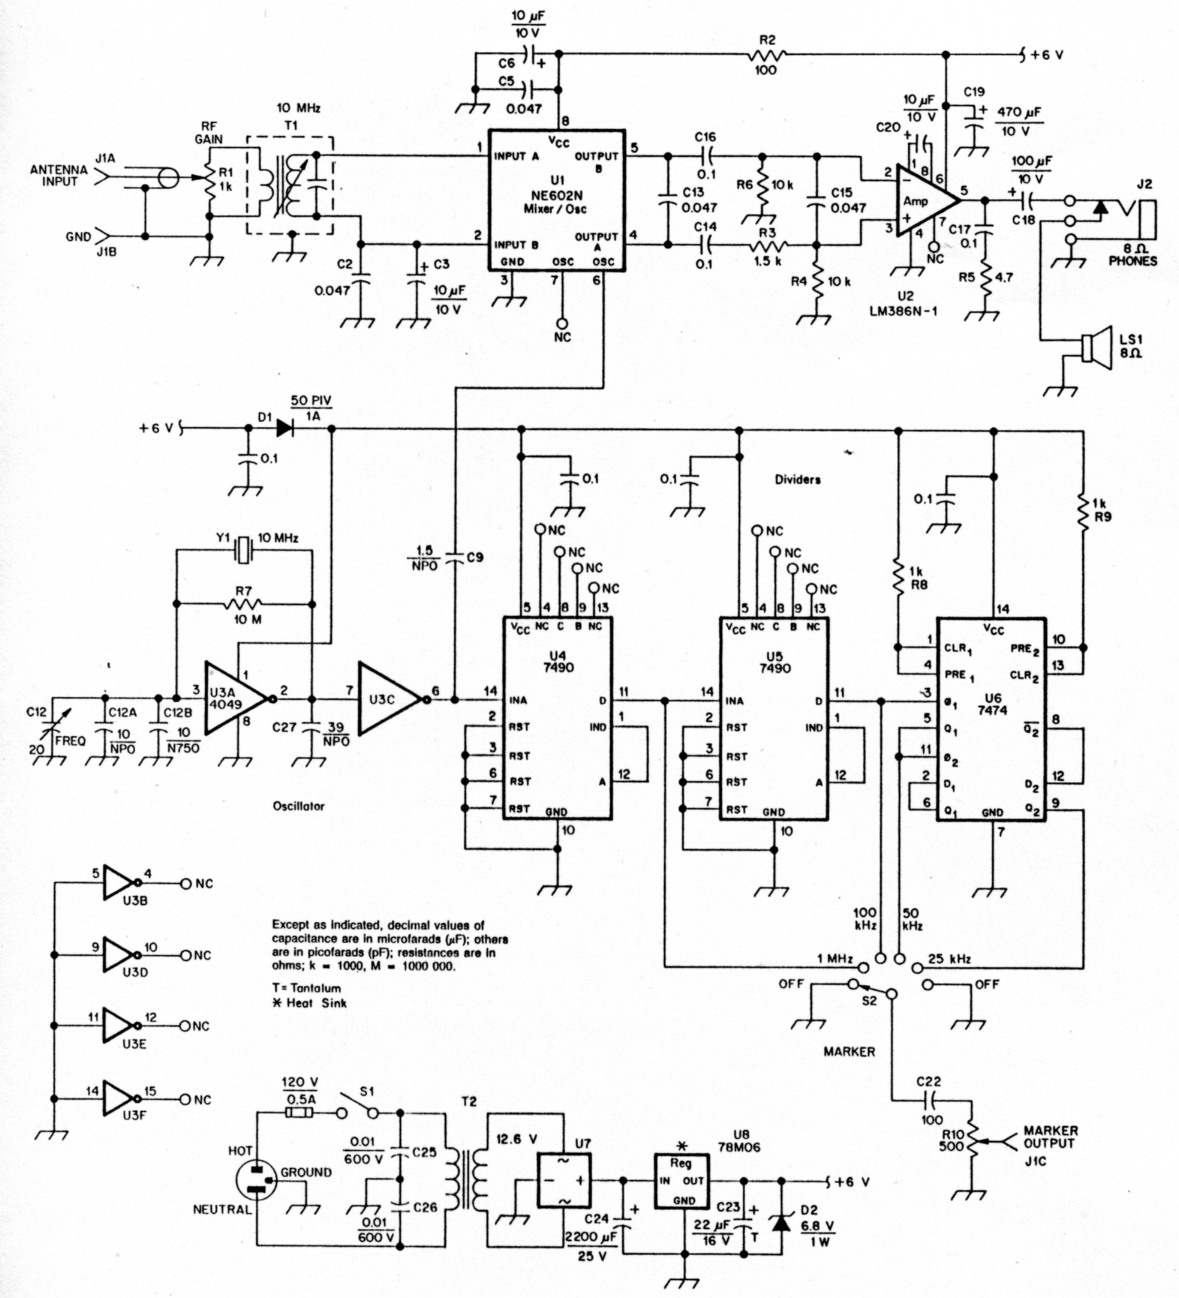 Index Of Ref Library Subjects Circuits Radio